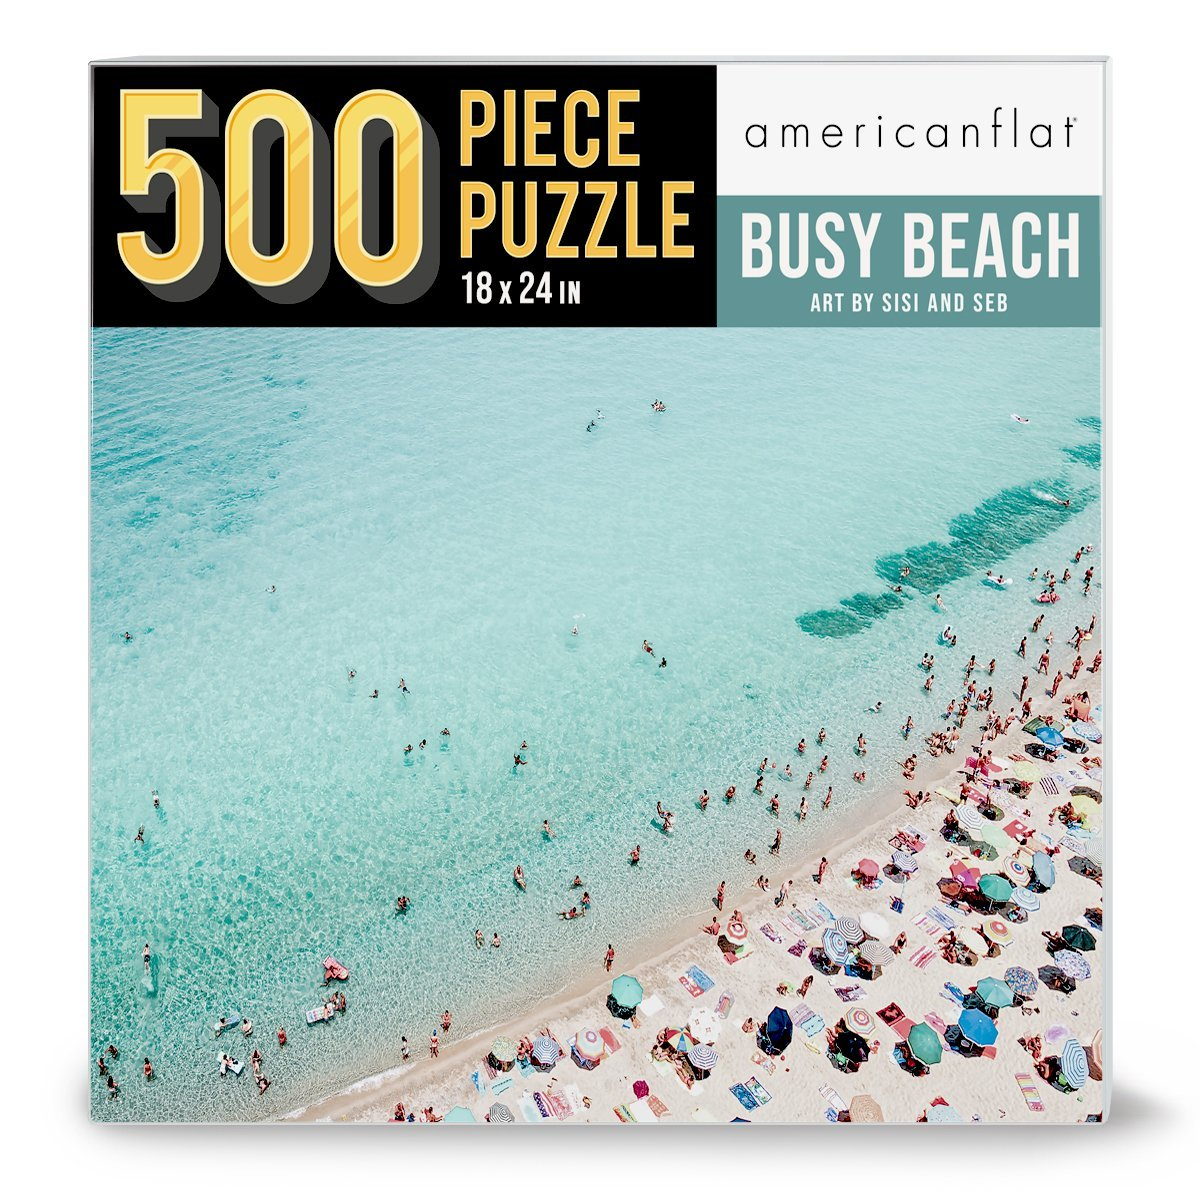 "500 Piece Jigsaw Puzzle 18""x24"" - Busy Beach by Sisi and Seb - Jigsaw Puzzle - Americanflat"